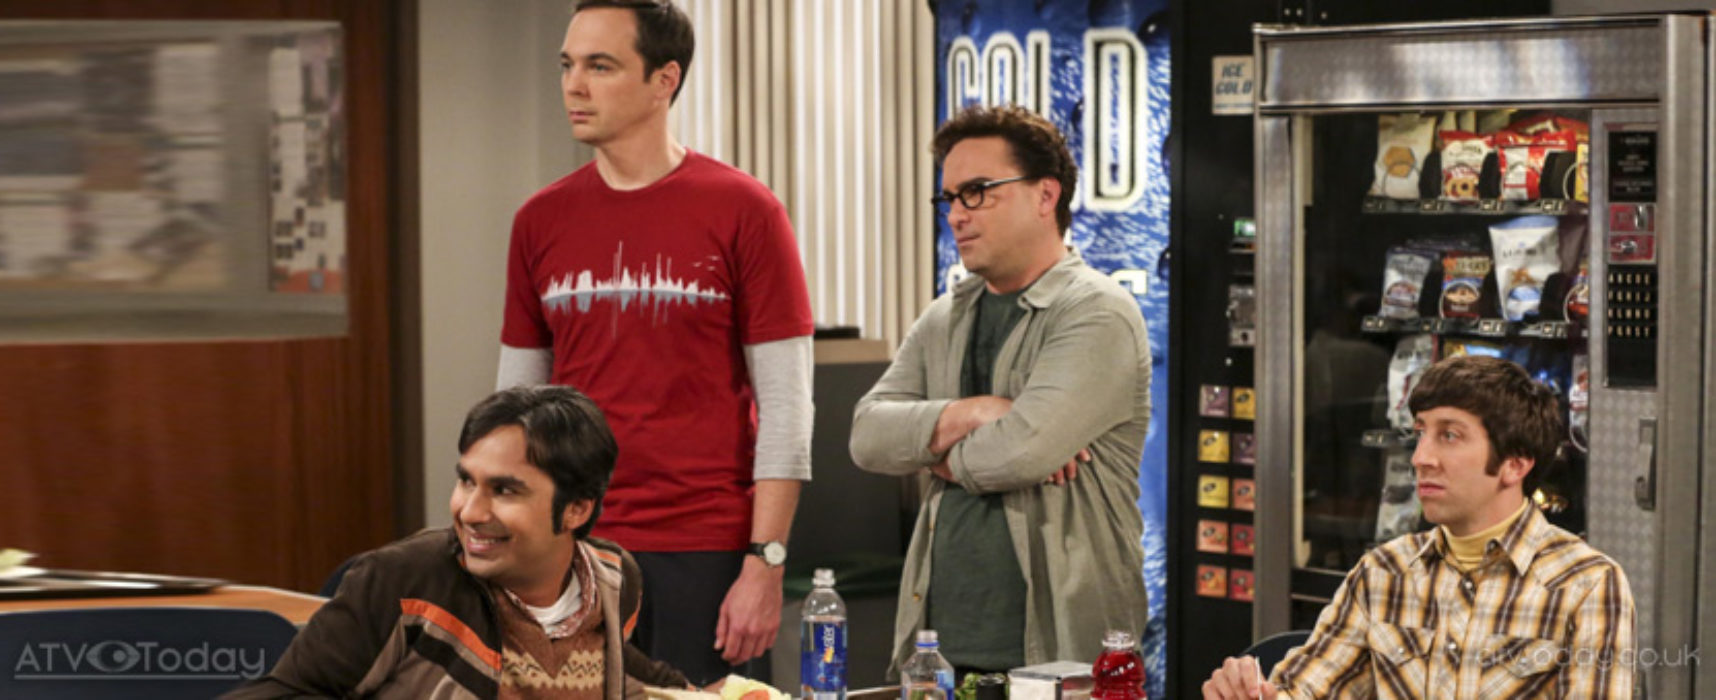 E4 to screen The Big Bang Theory spin-off